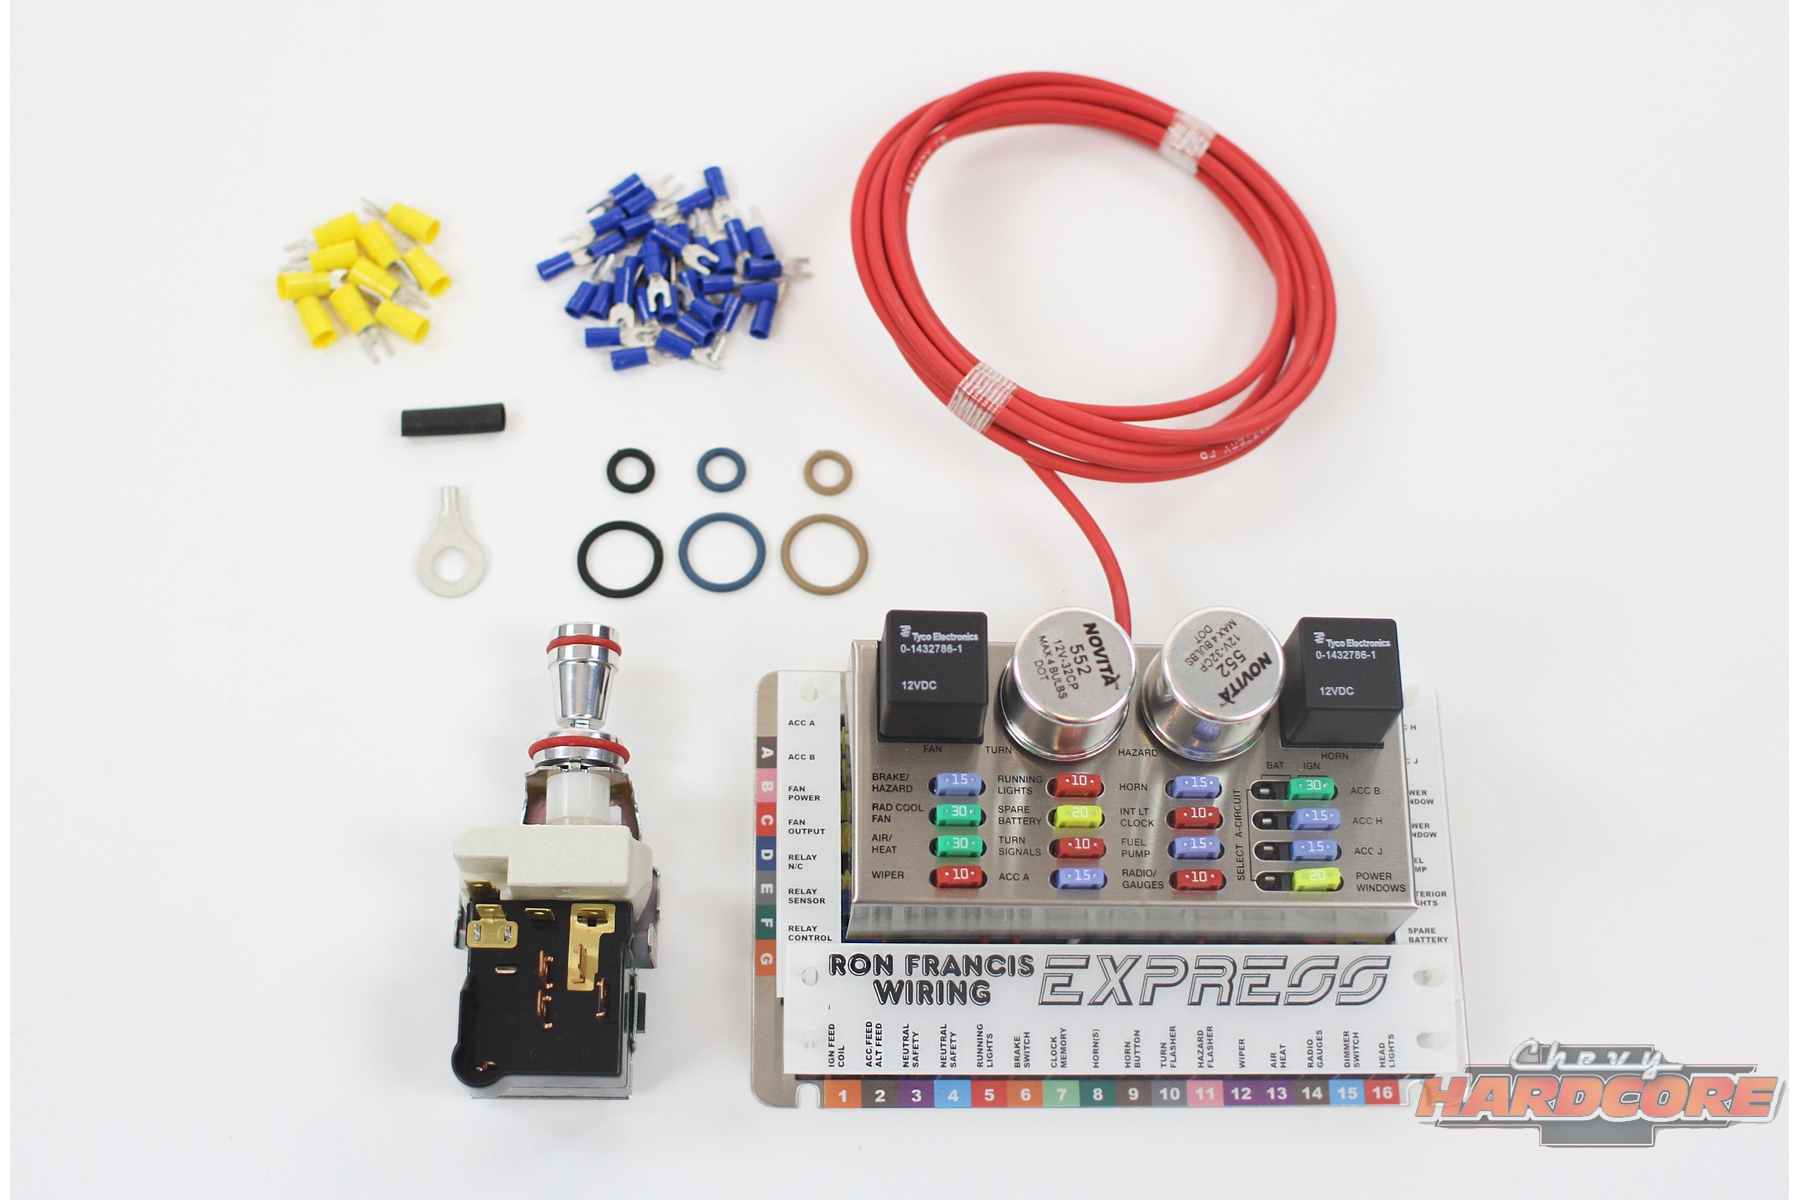 hight resolution of the express 16 fuse kit comes with all the wiring necessary to wire the car now and add accessories in the future